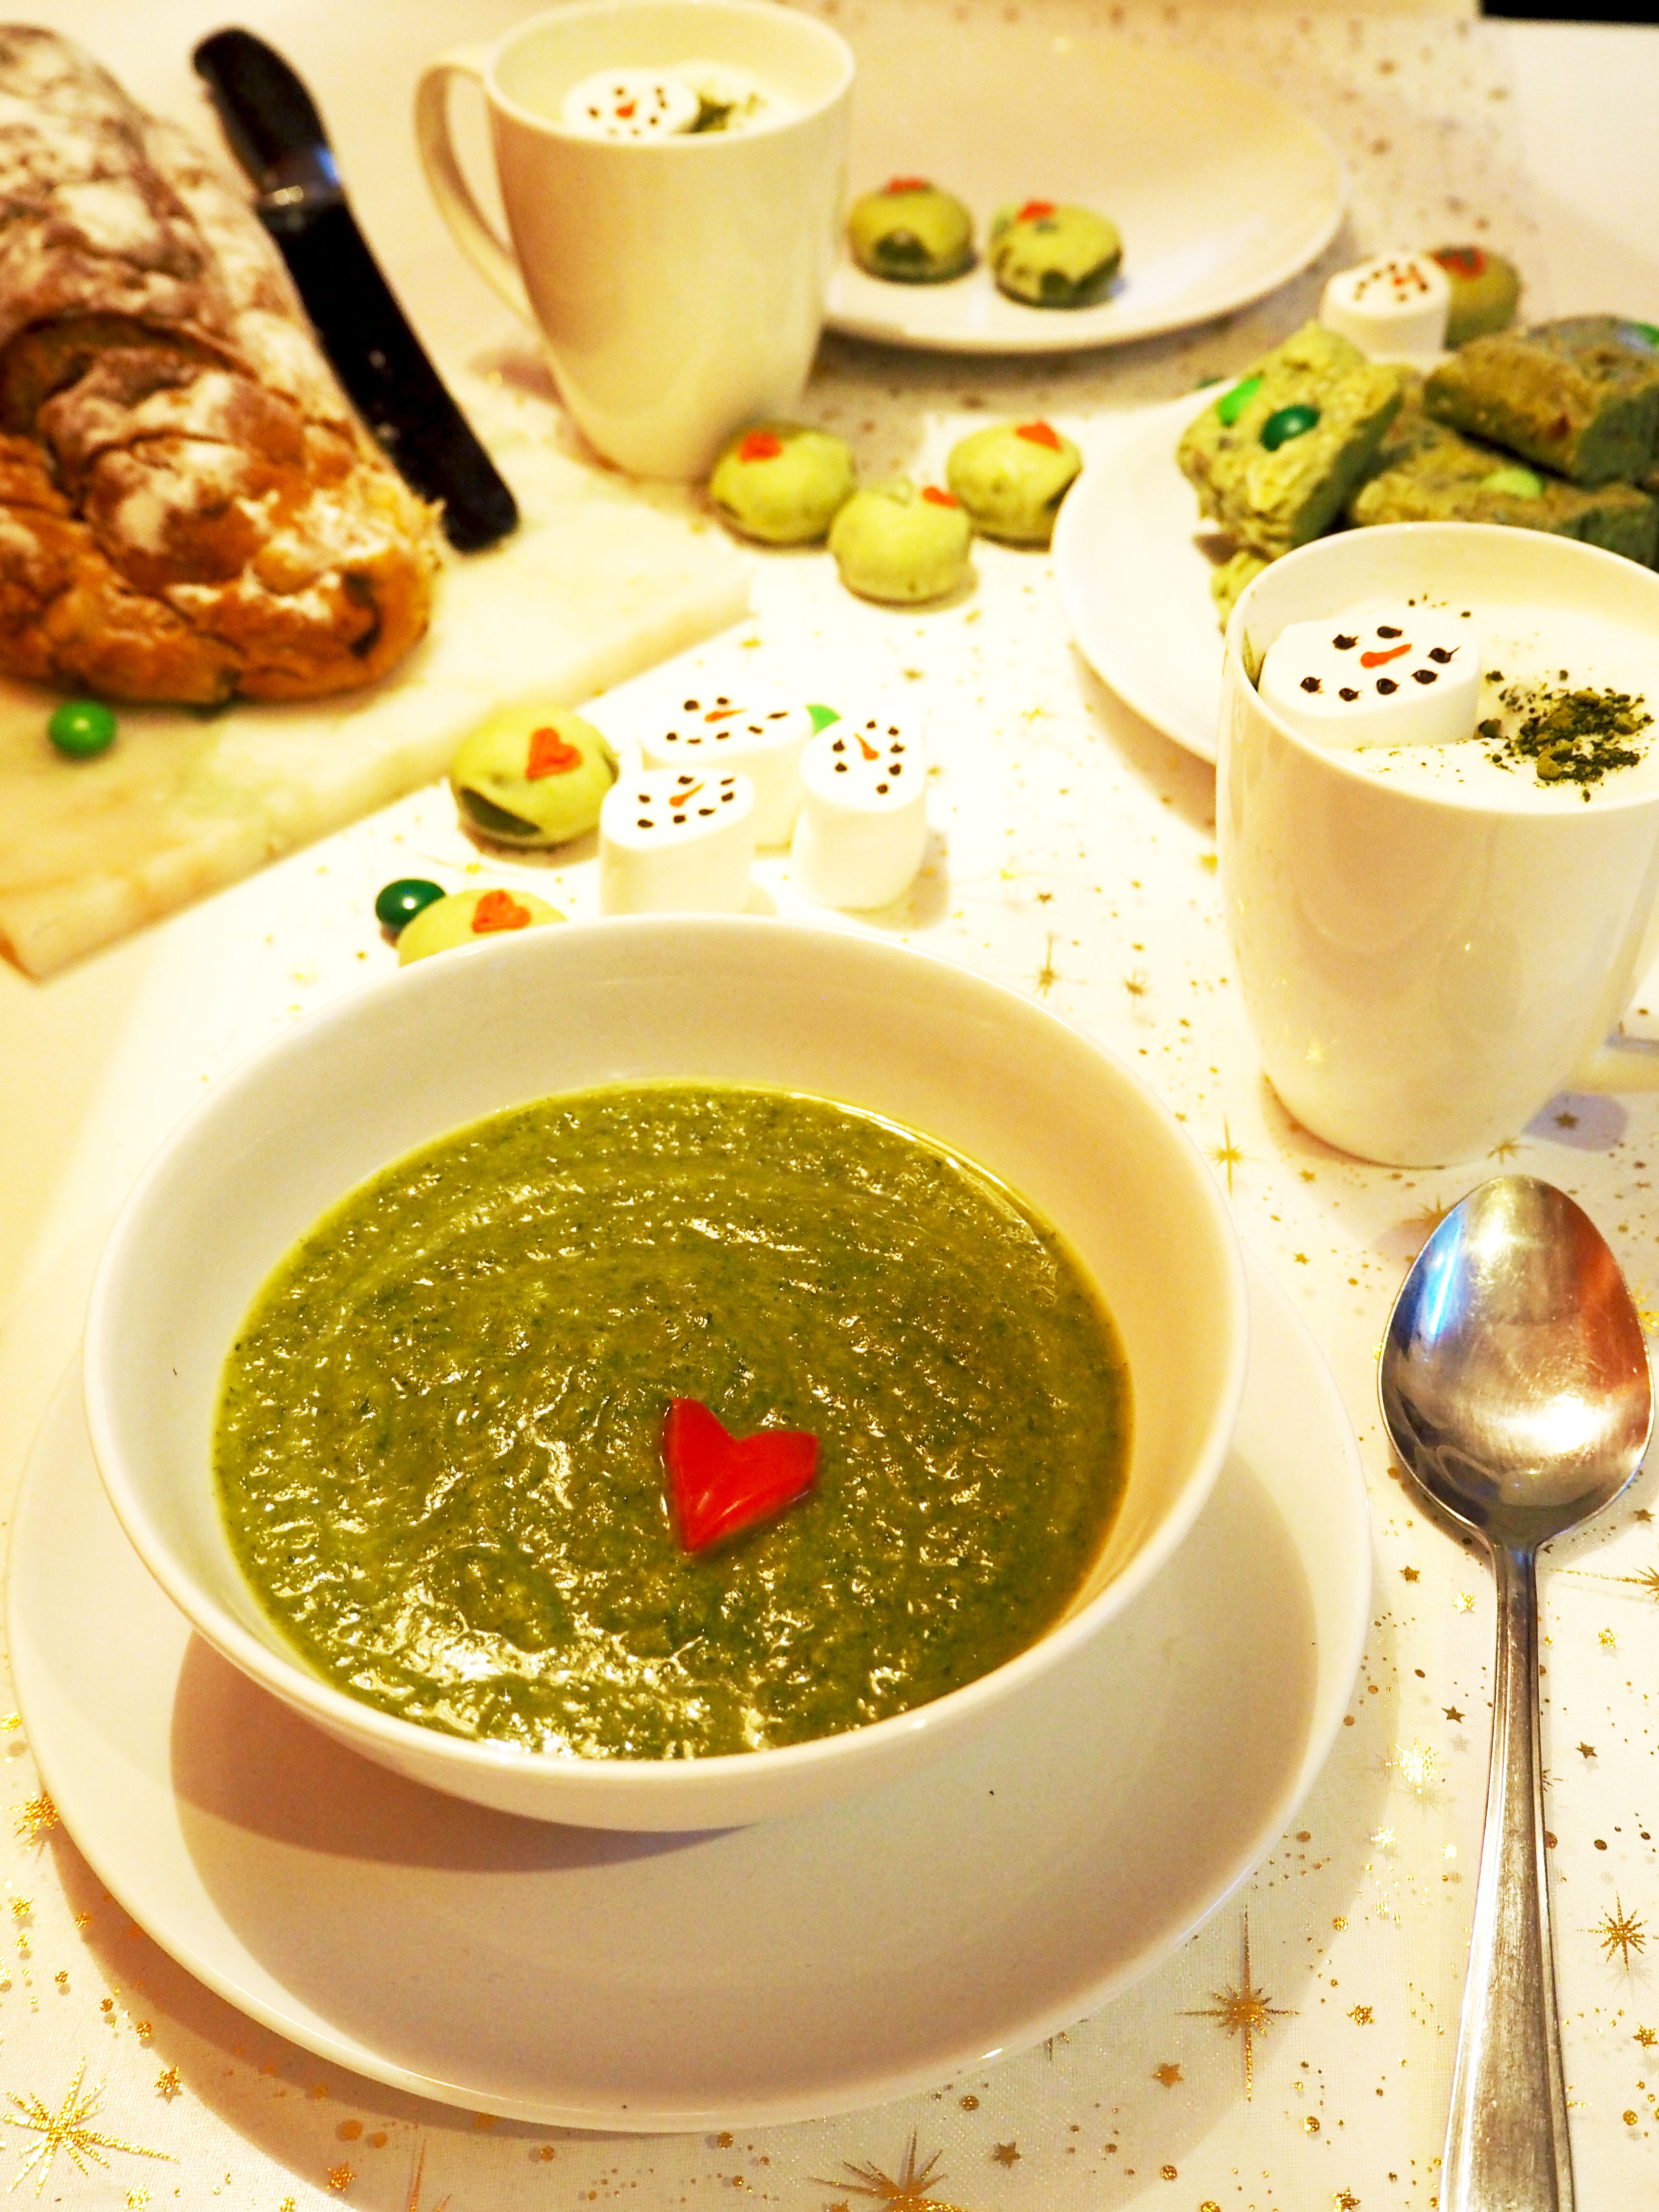 the grinch recept courgette spinazie soep